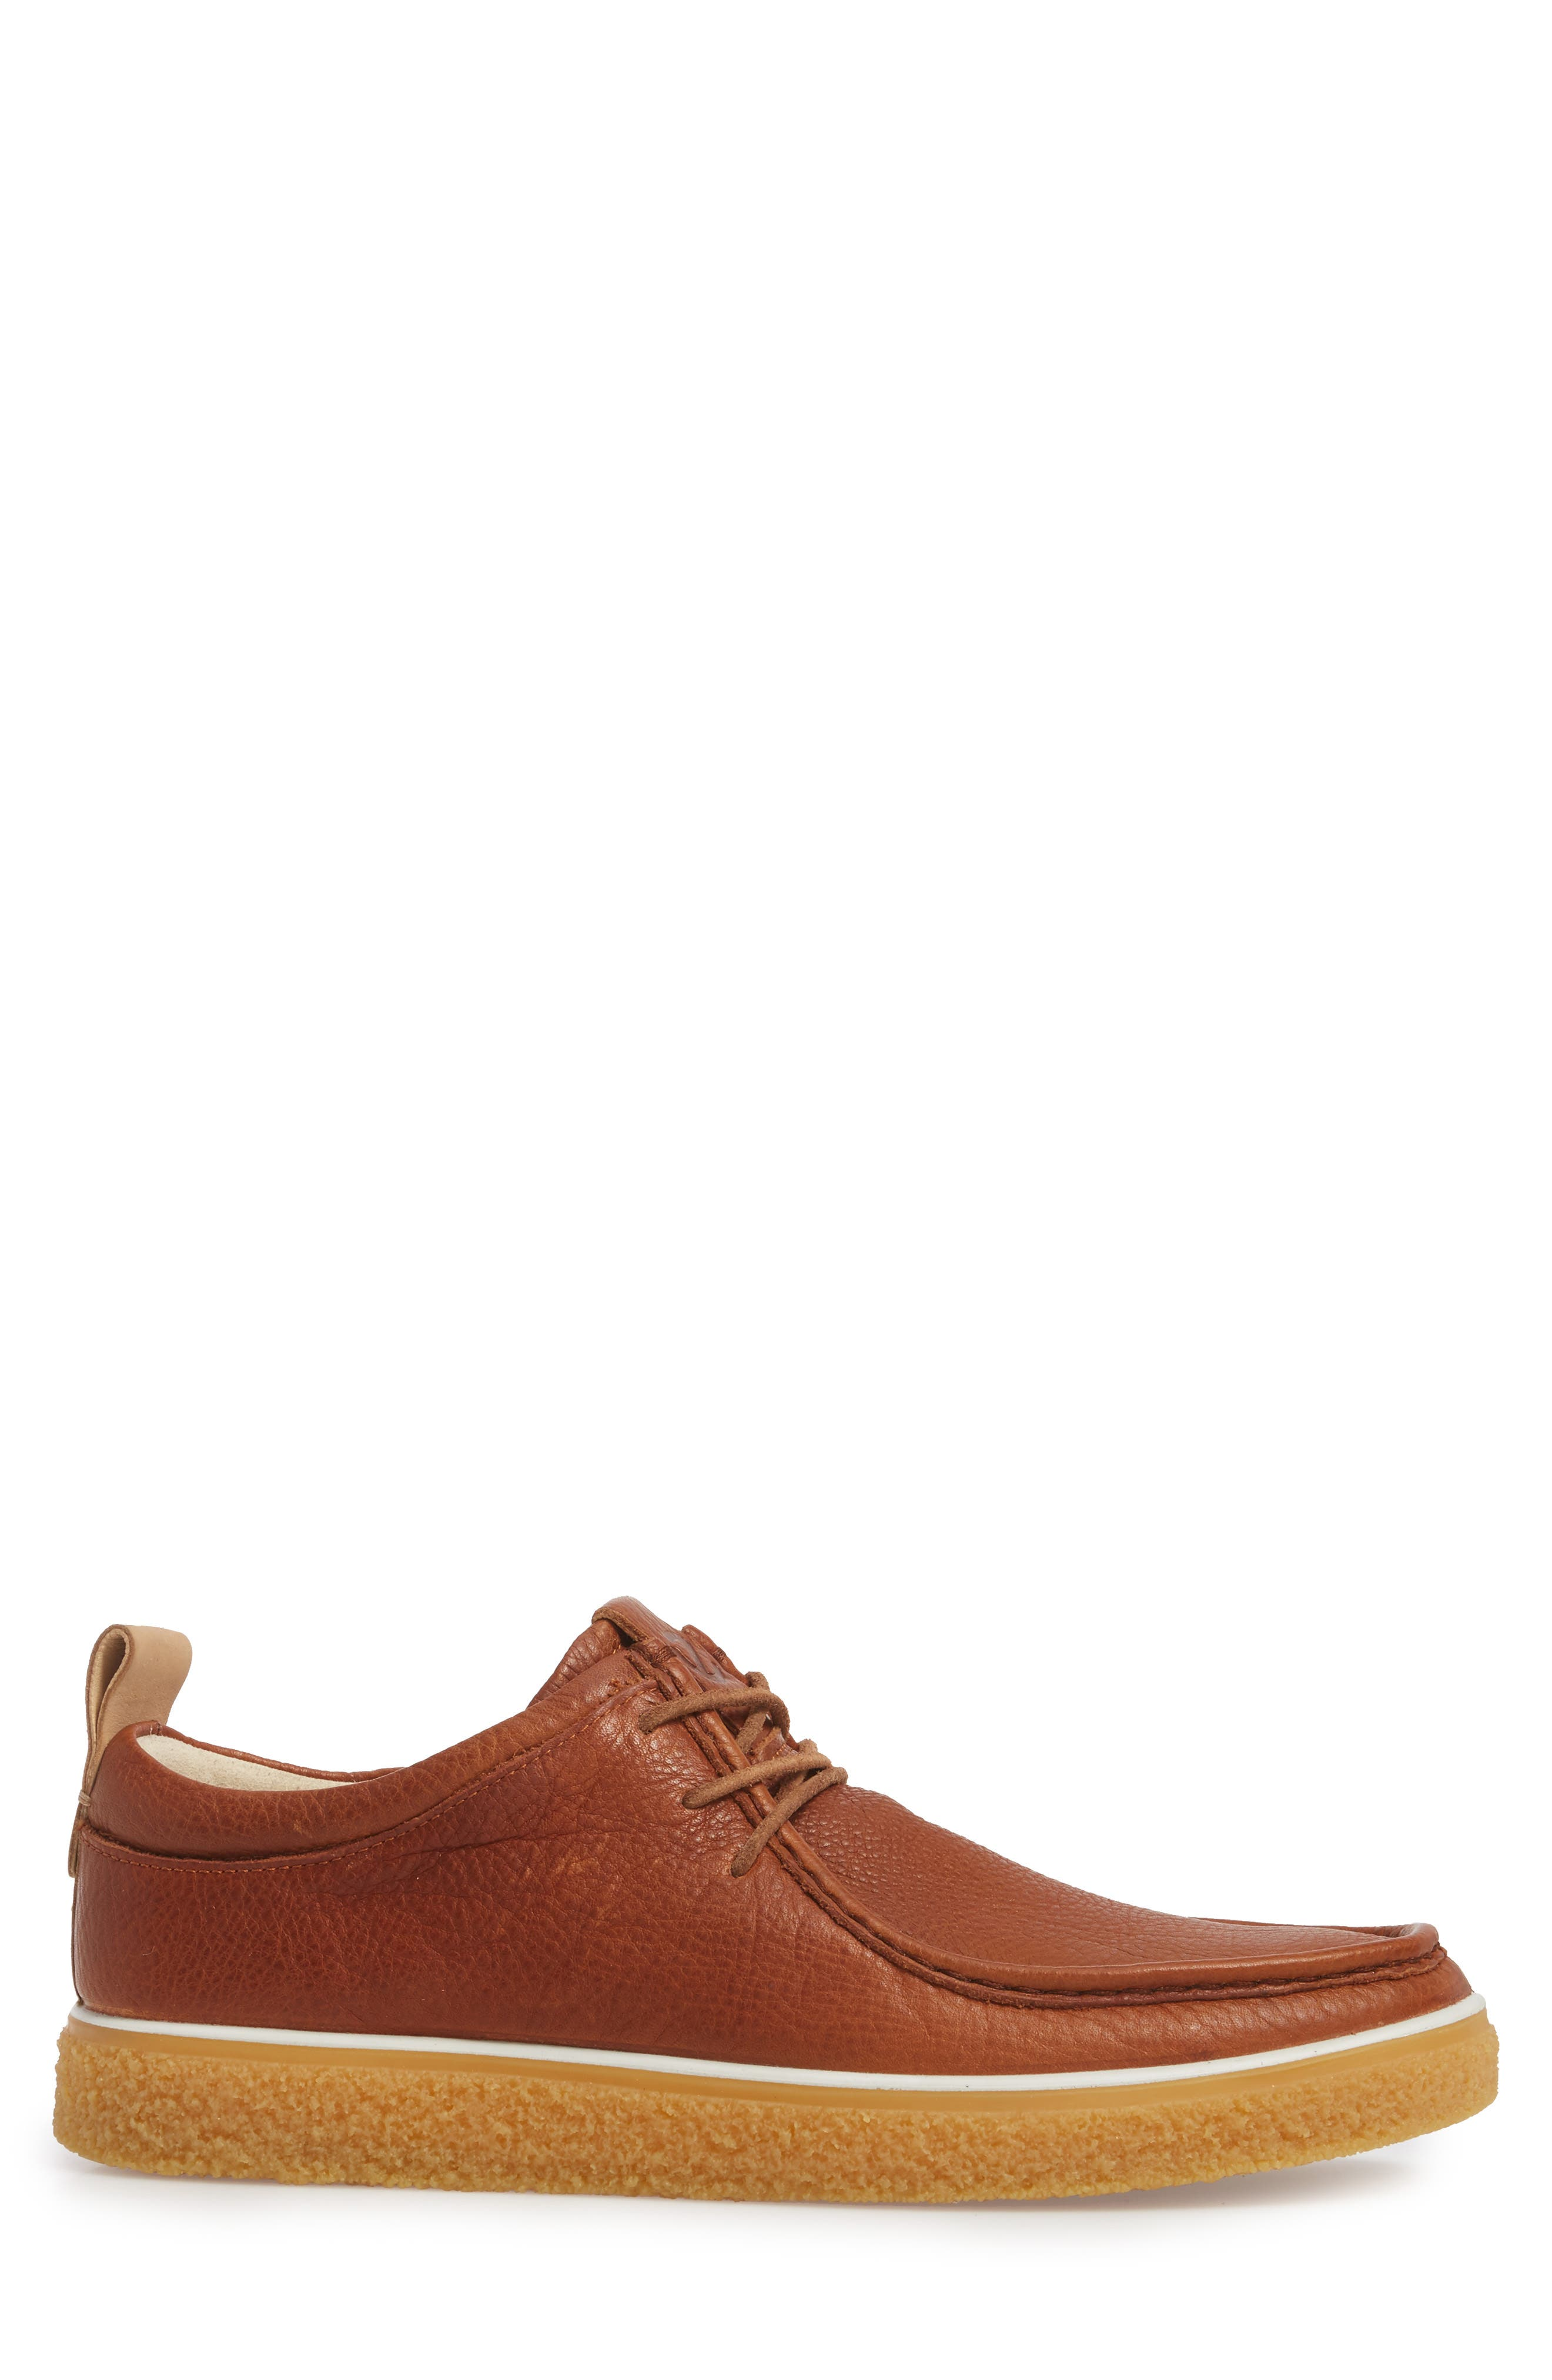 Crepetray Moc Toe Lace-Up,                             Alternate thumbnail 3, color,                             Lion Leather